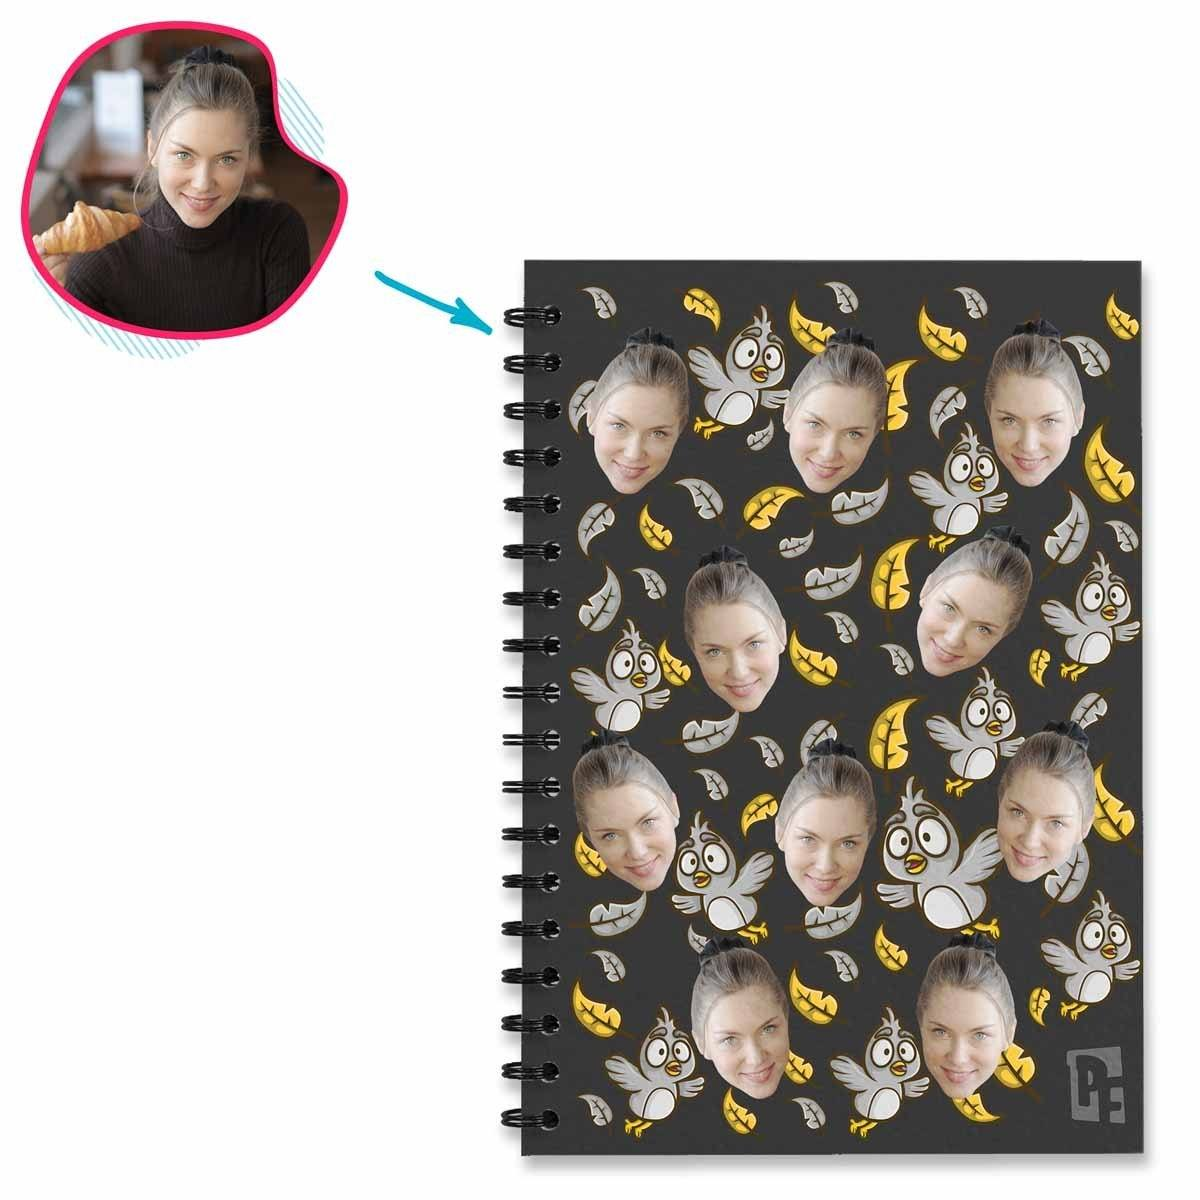 dark Bird Notebook personalized with photo of face printed on them